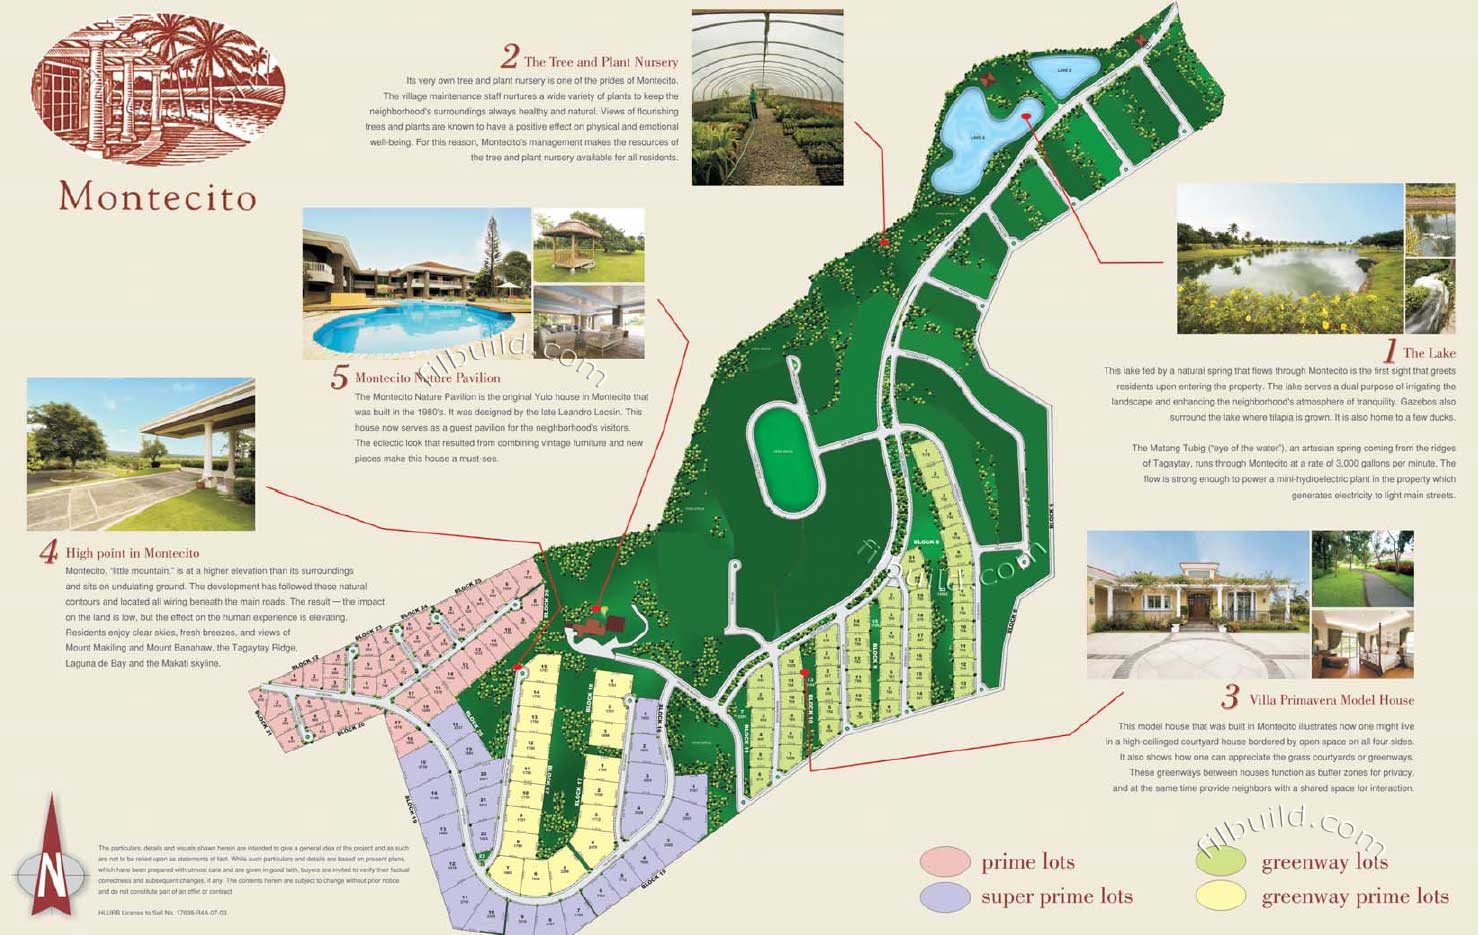 Canlubang Calamba Laguna Real Estate Home Lot For Sale At Montecito By Ayala Land